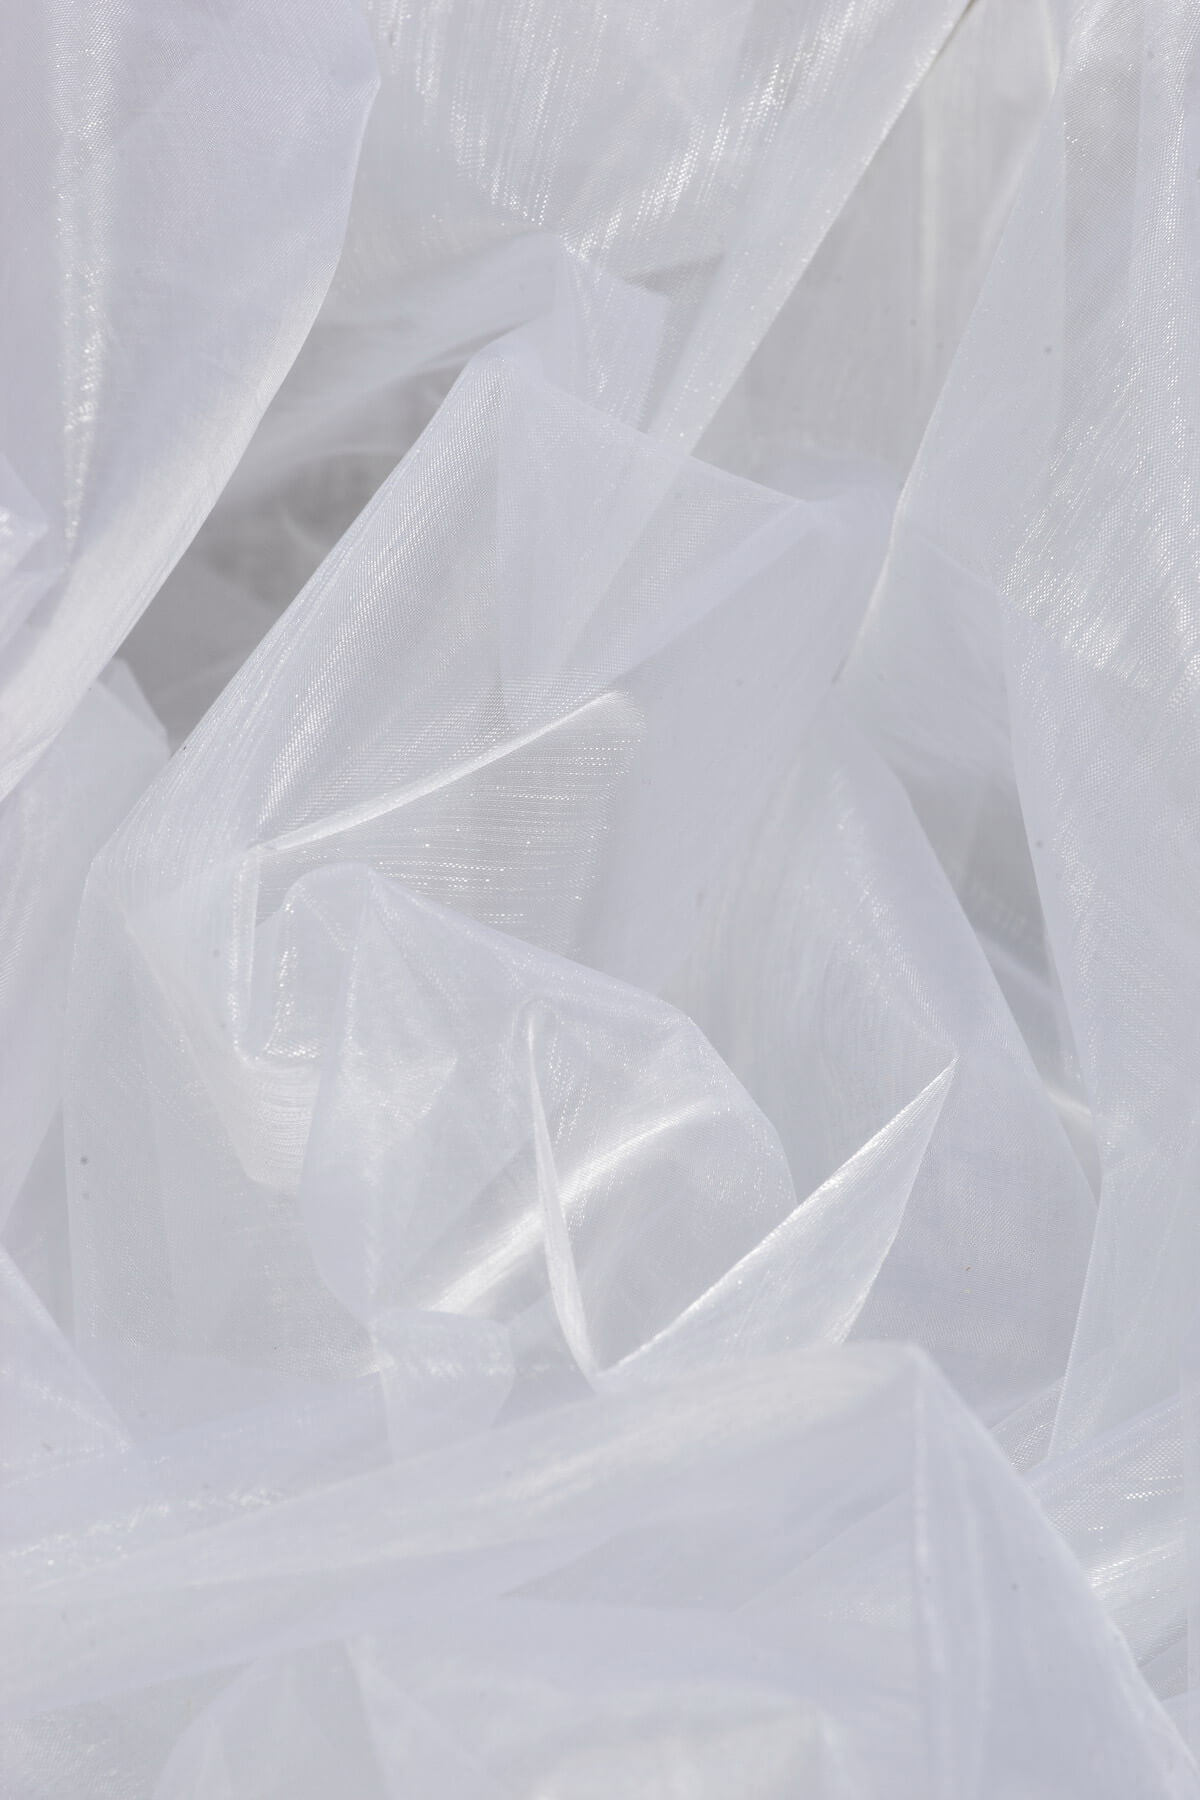 Organza White 5yds